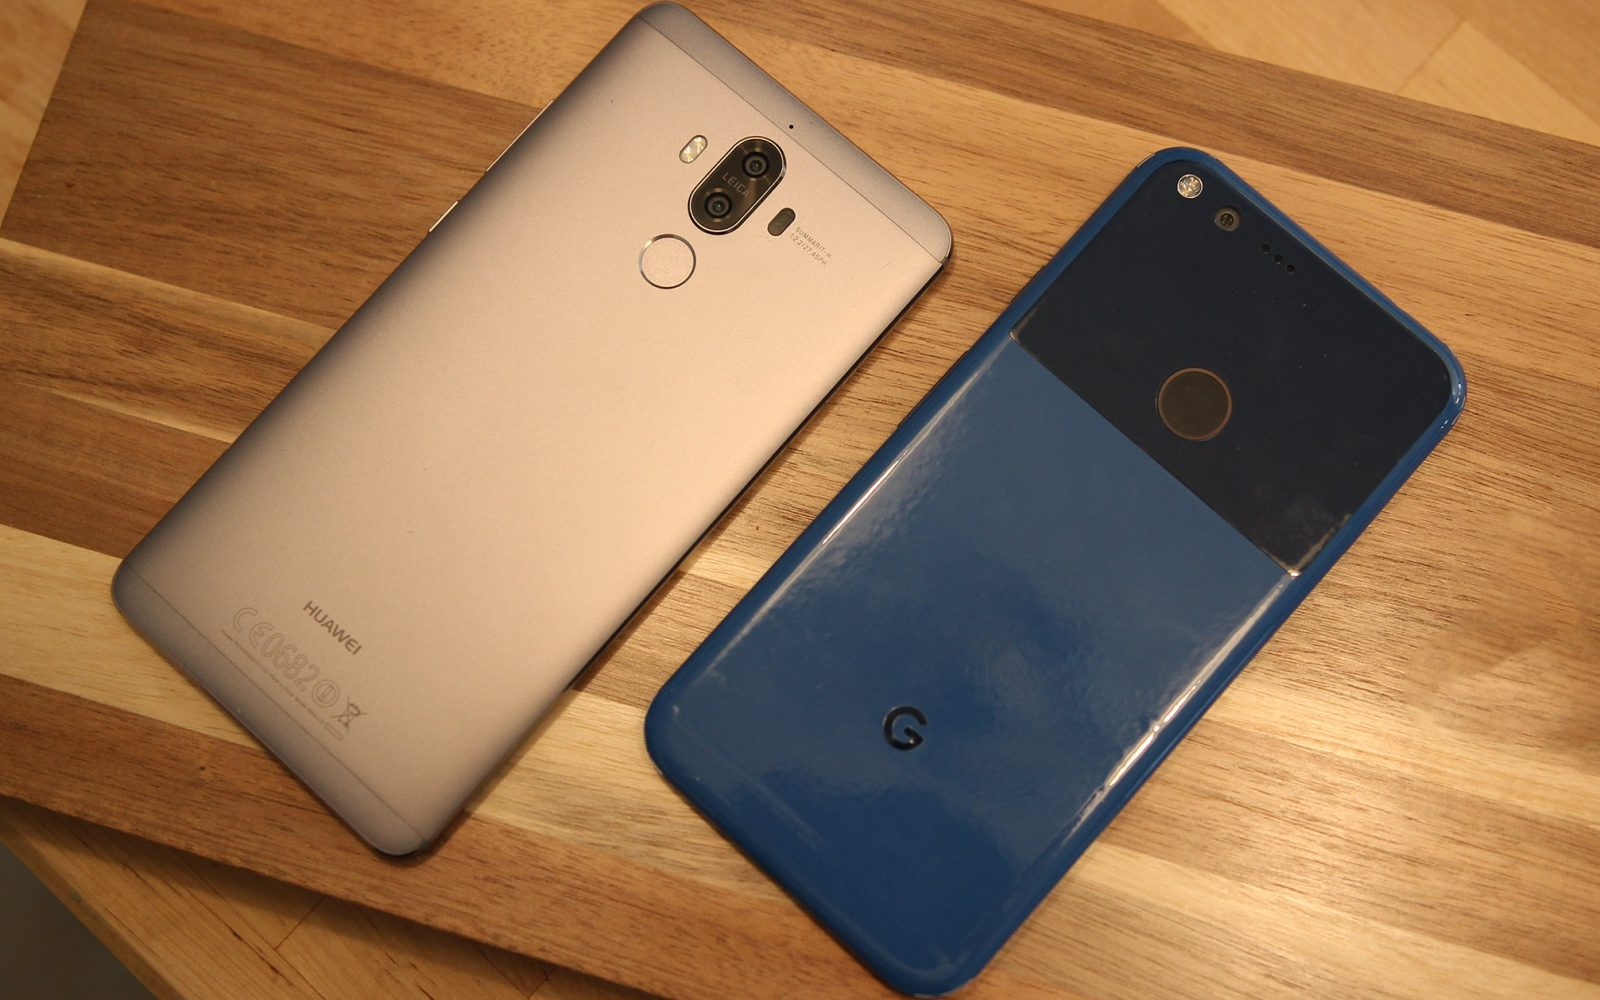 Opinion: The Huawei Mate 9 is the best Android alternative to